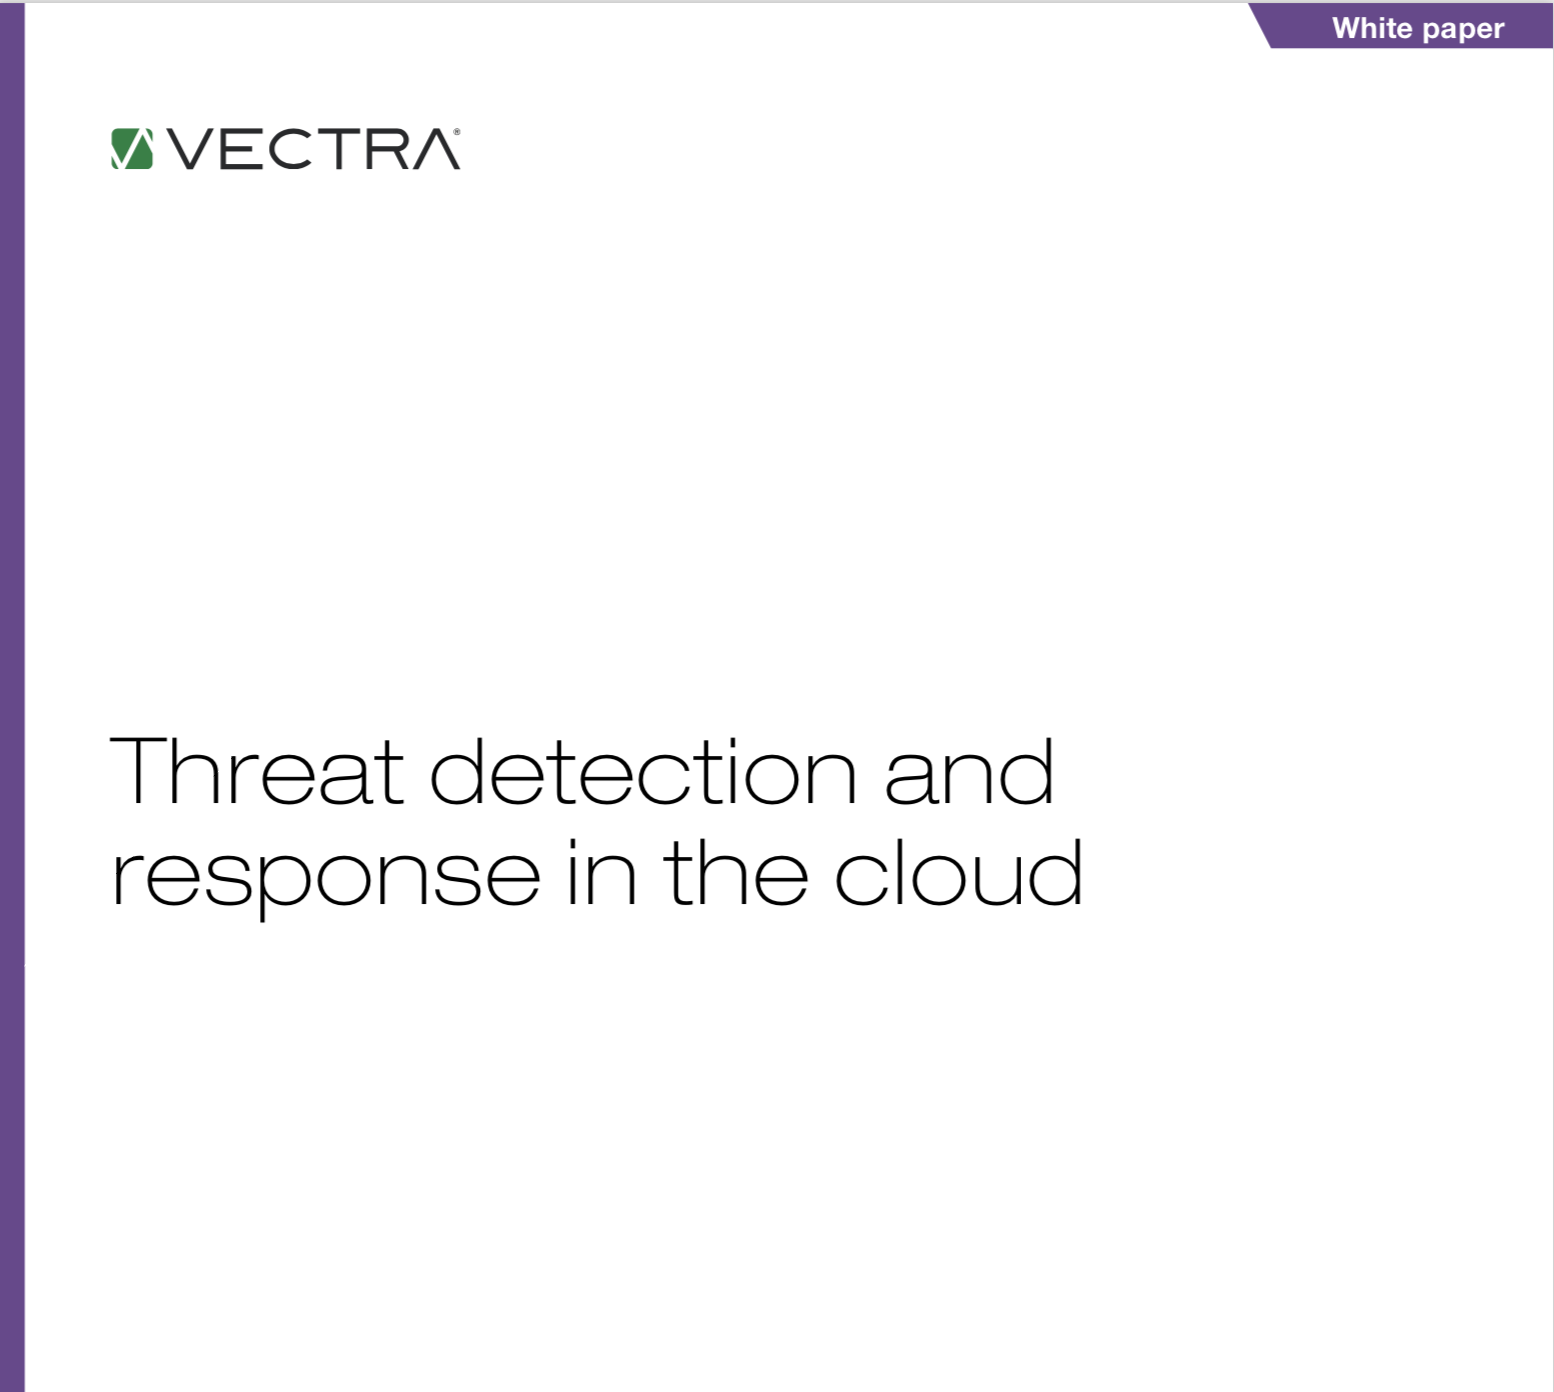 Threat detection and response in the cloud